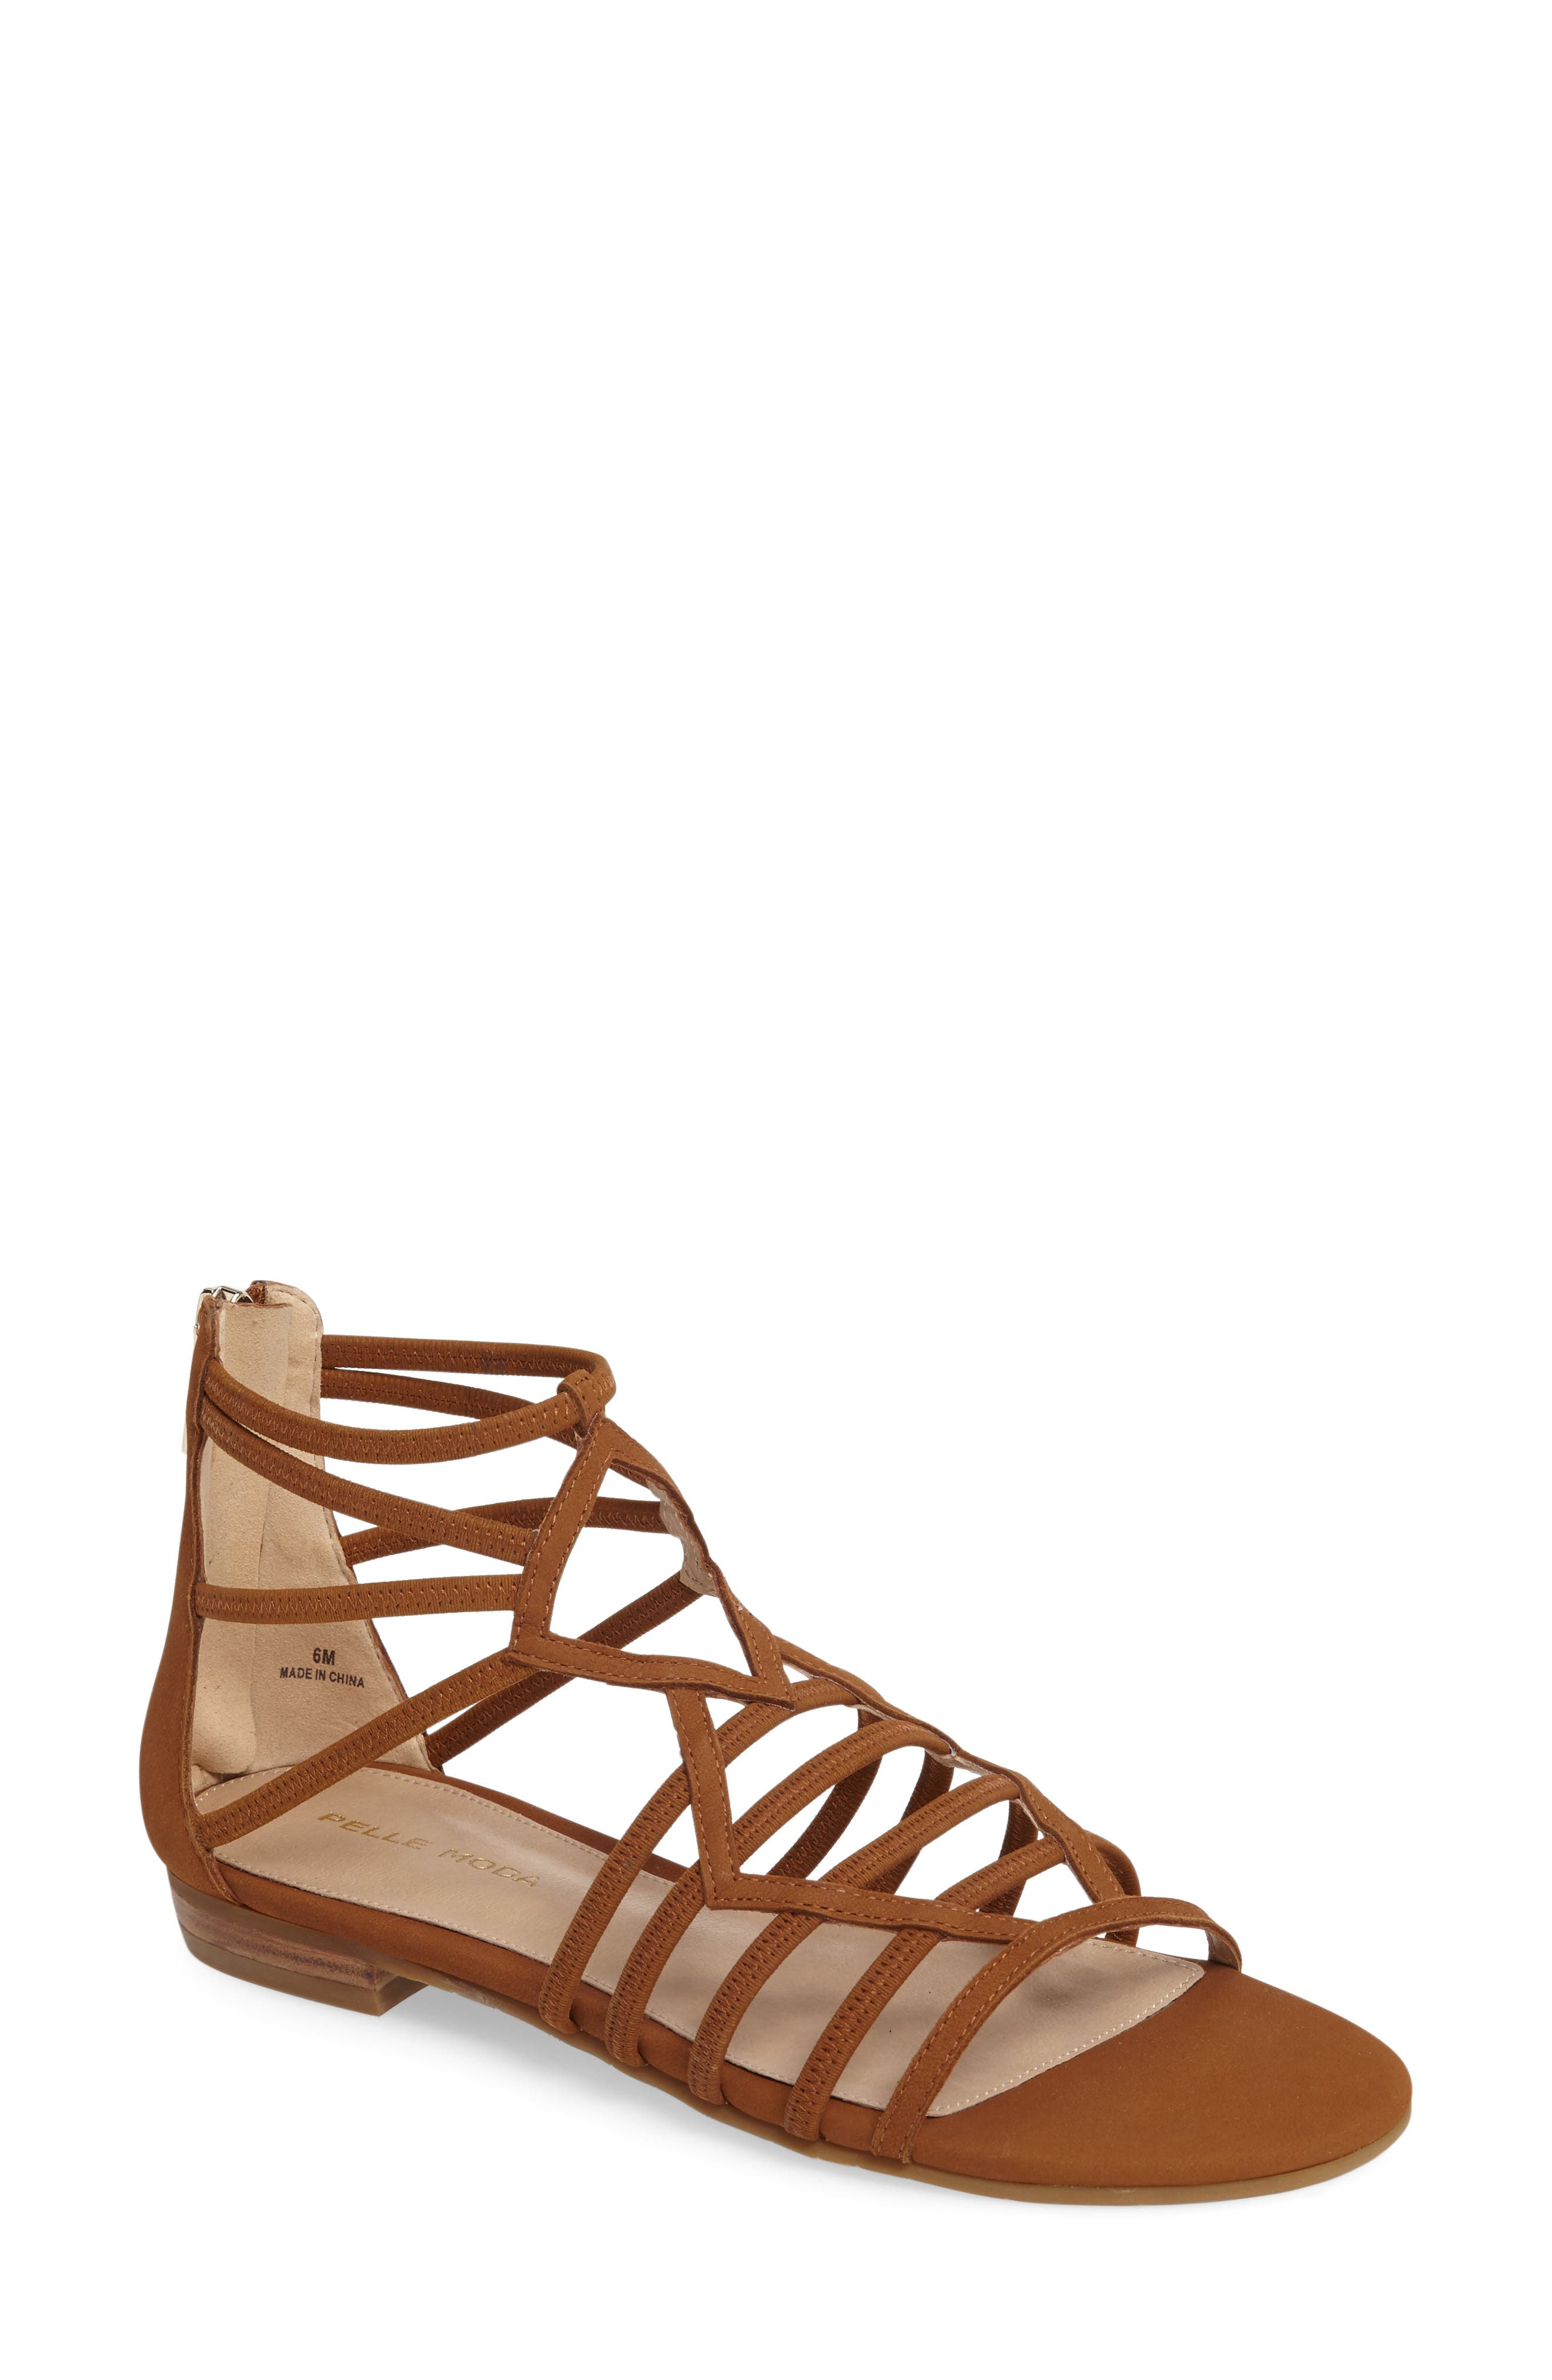 Brazil Strappy Sandal,                             Main thumbnail 1, color,                             Luggage Leather